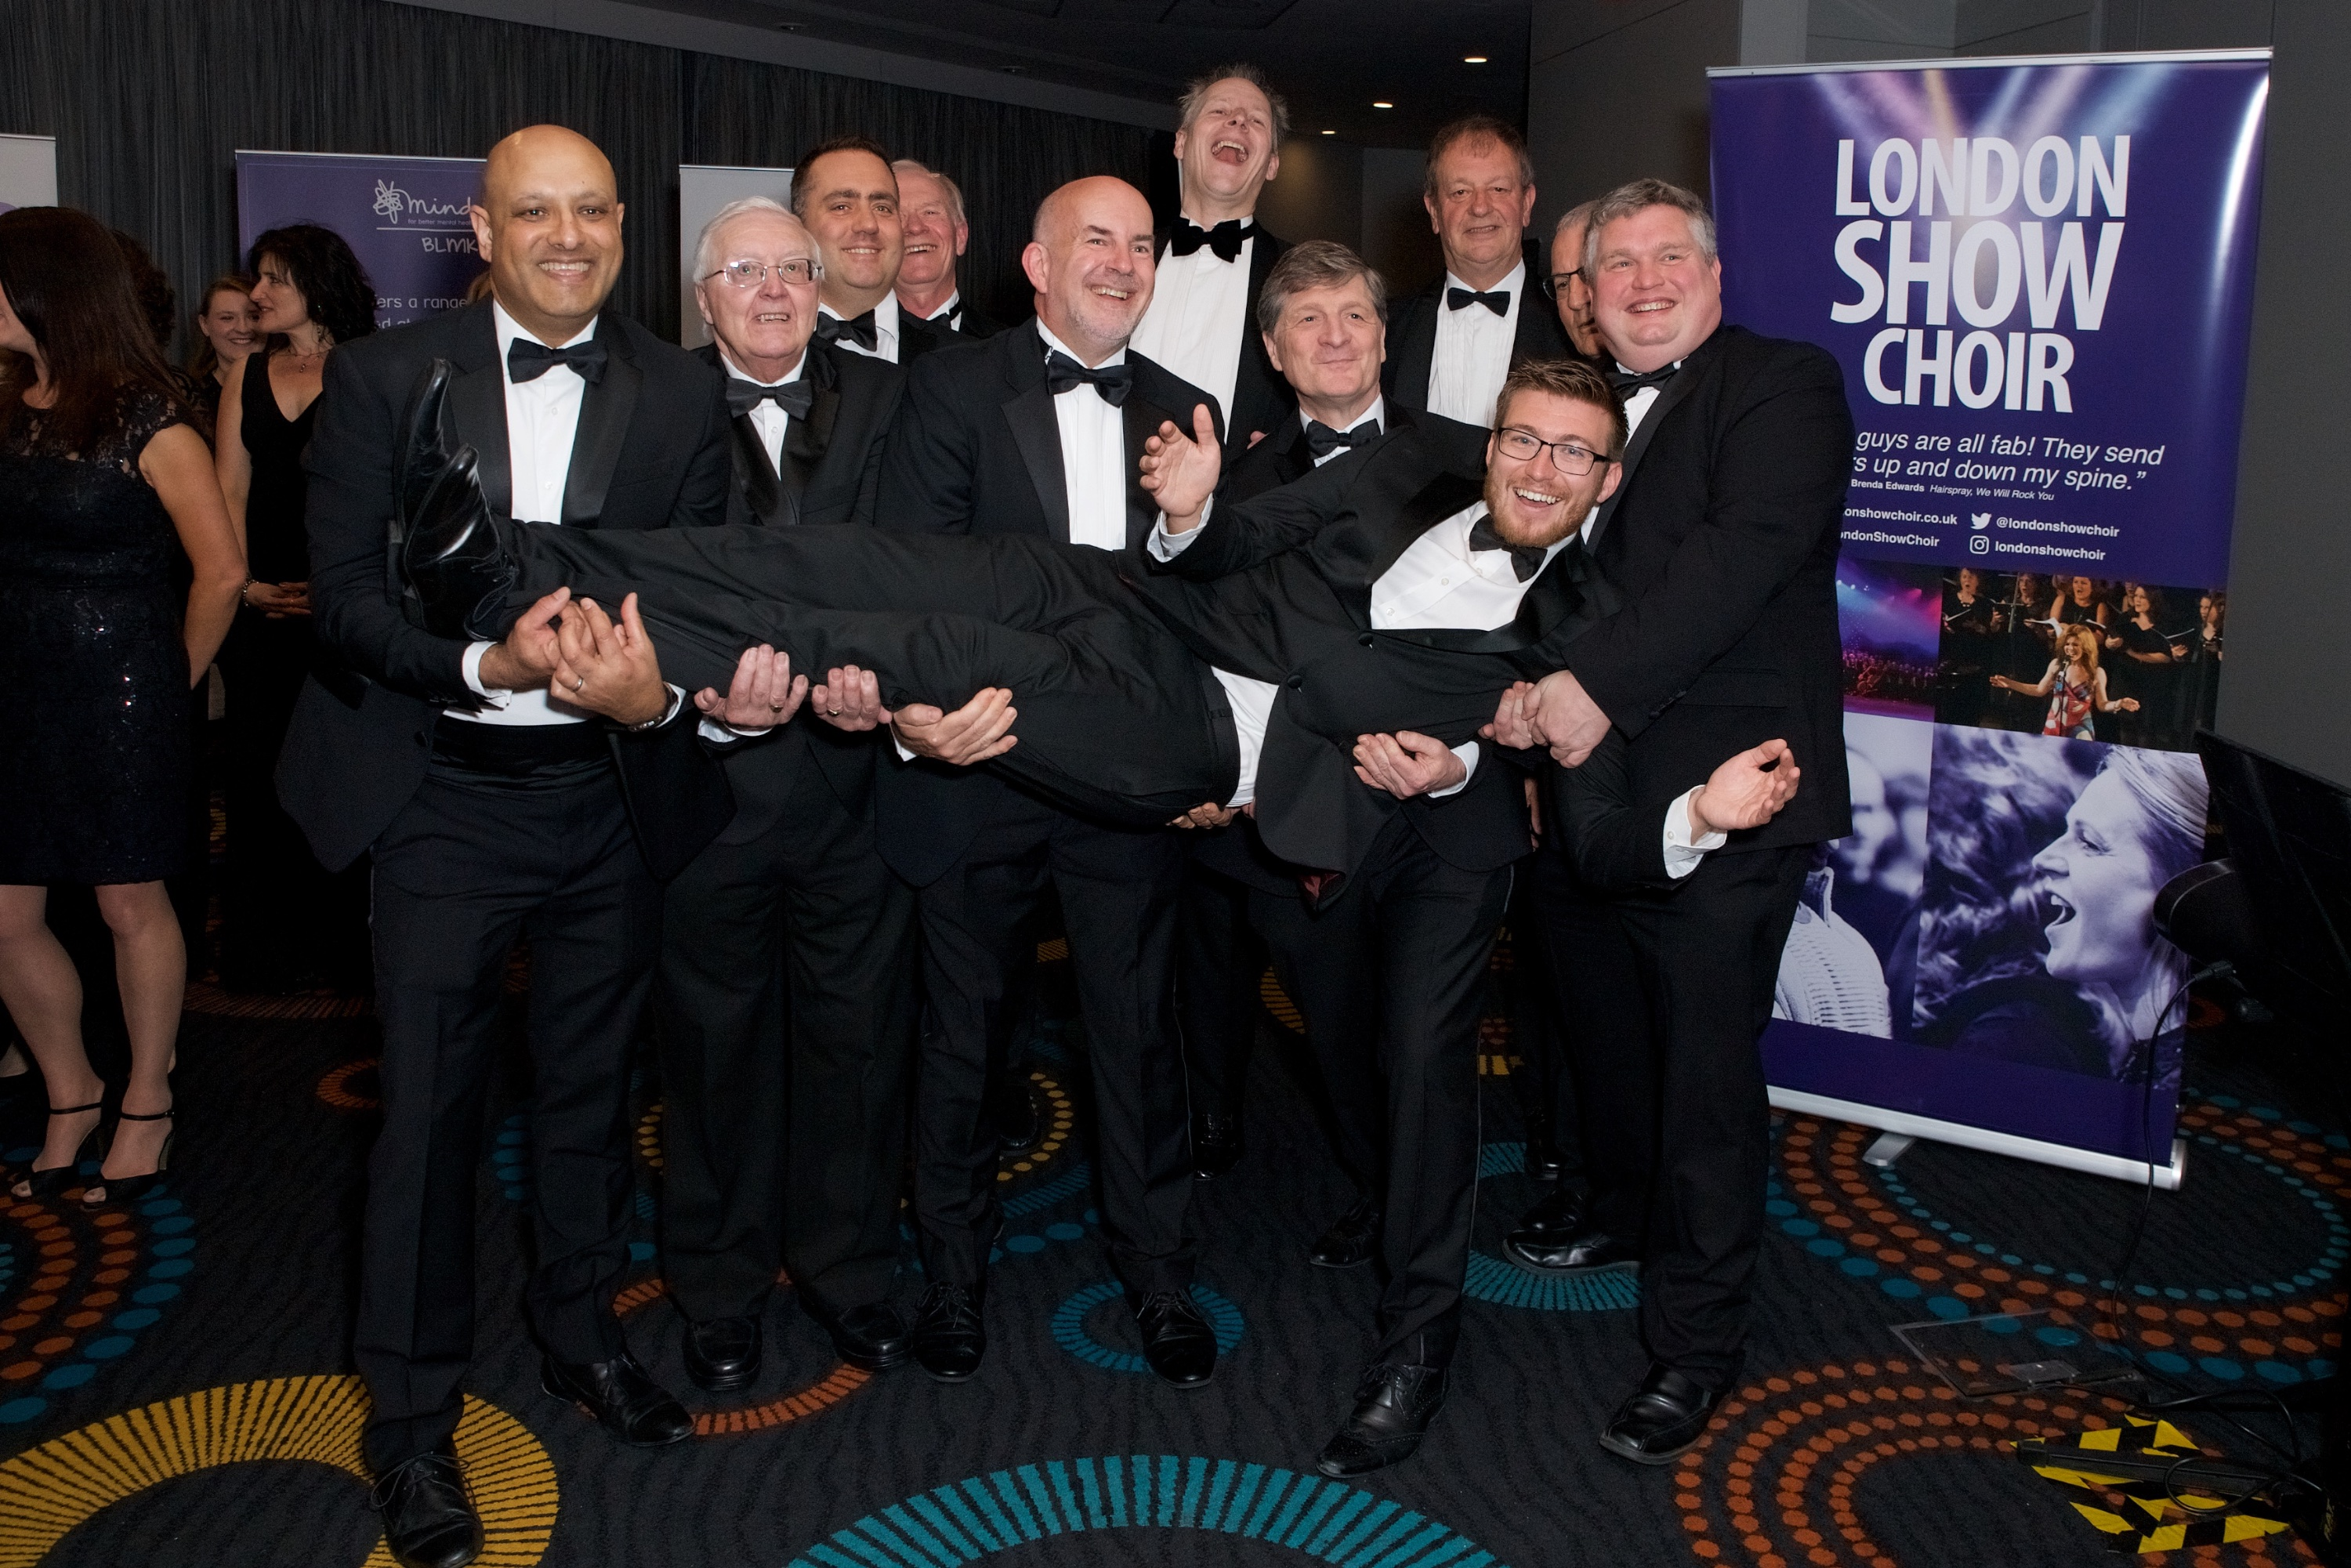 London Show Choir at NLP Awards